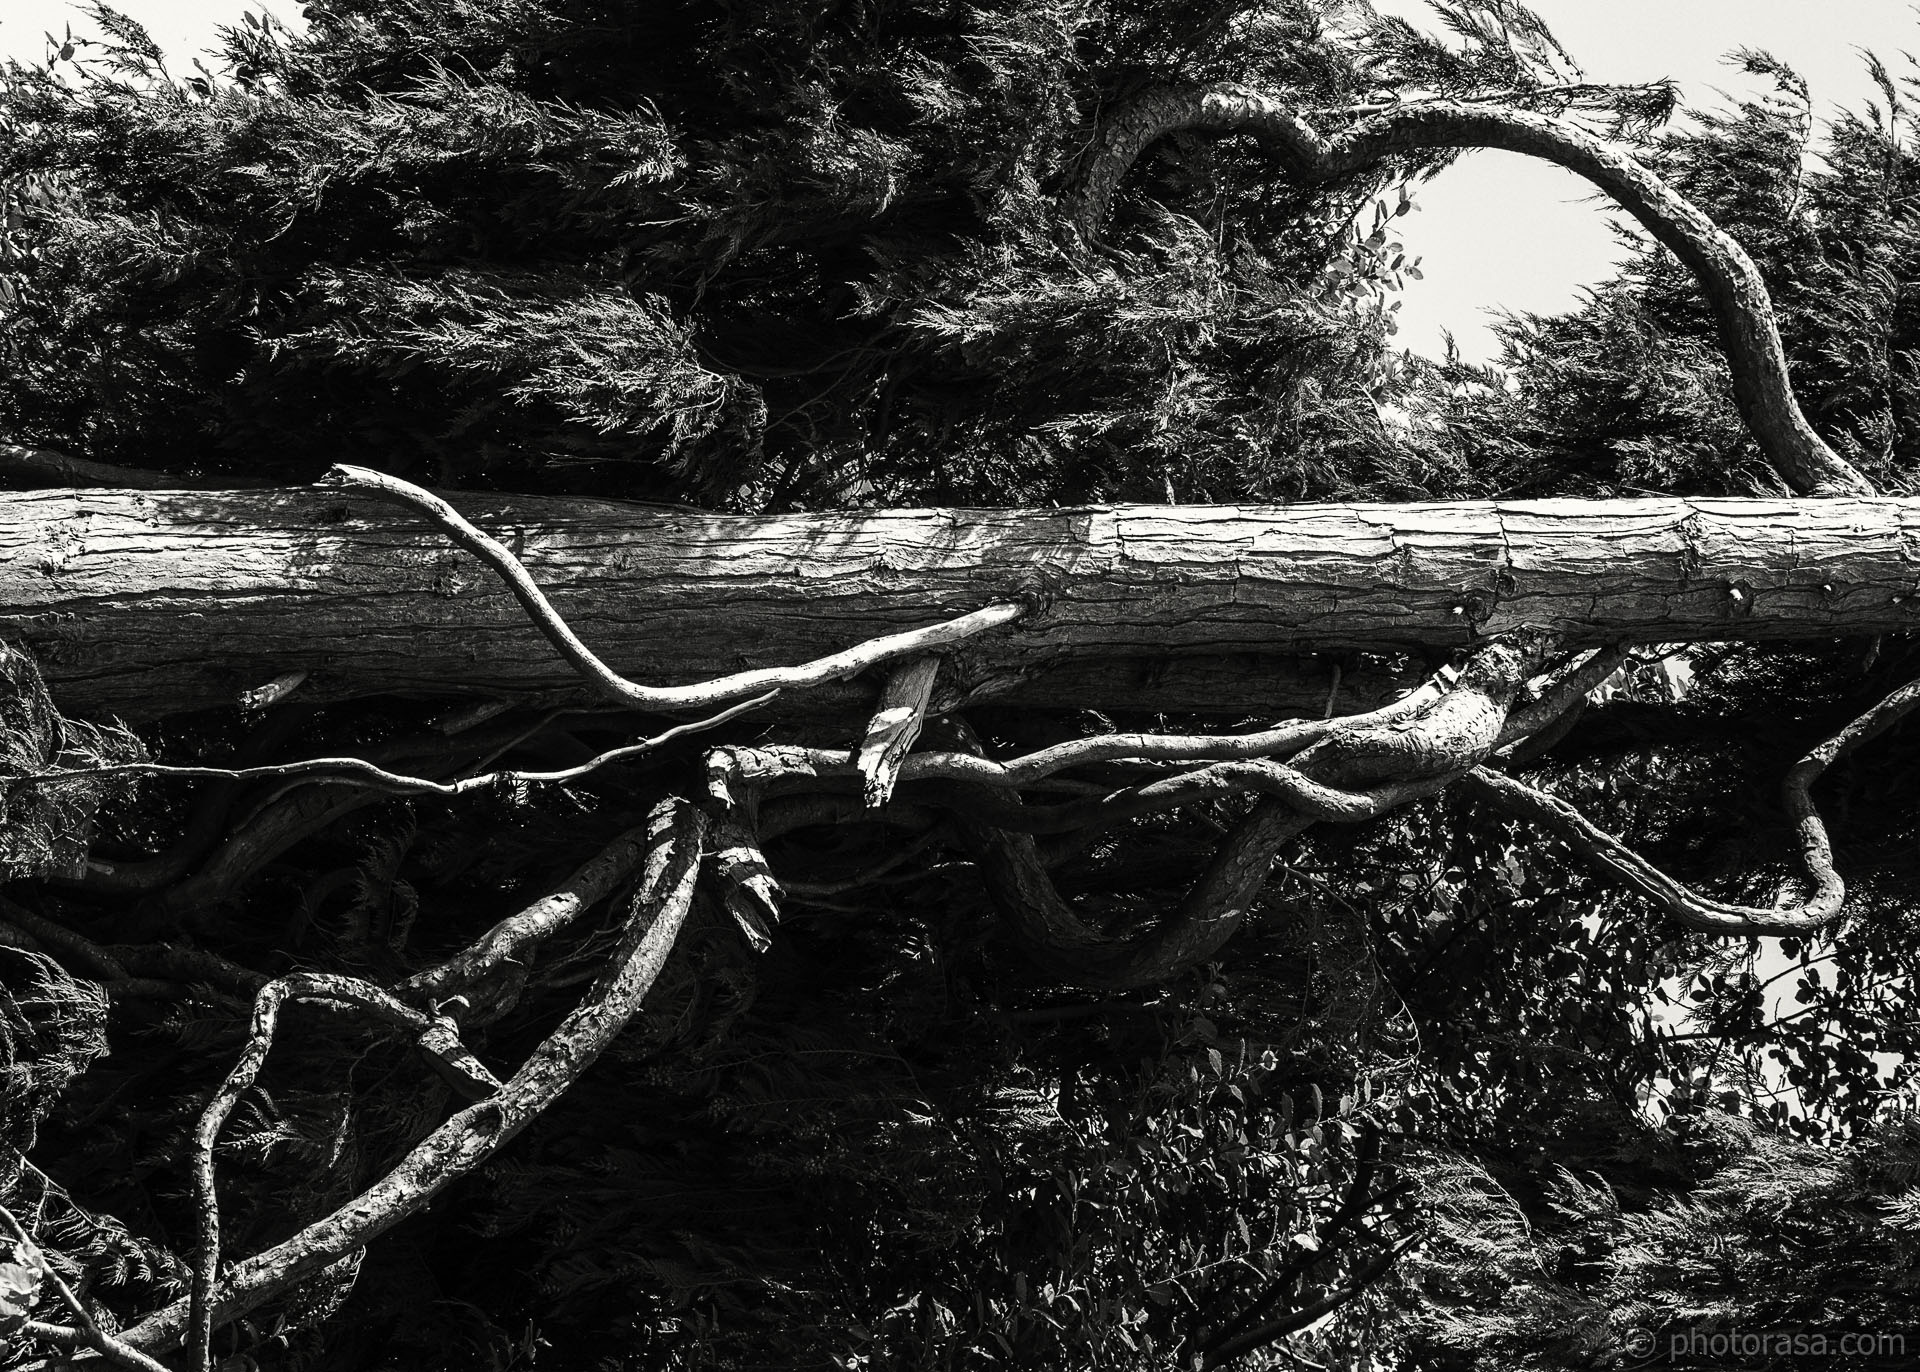 http://photorasa.com/wood-and-bark-textures/twisted-branches/